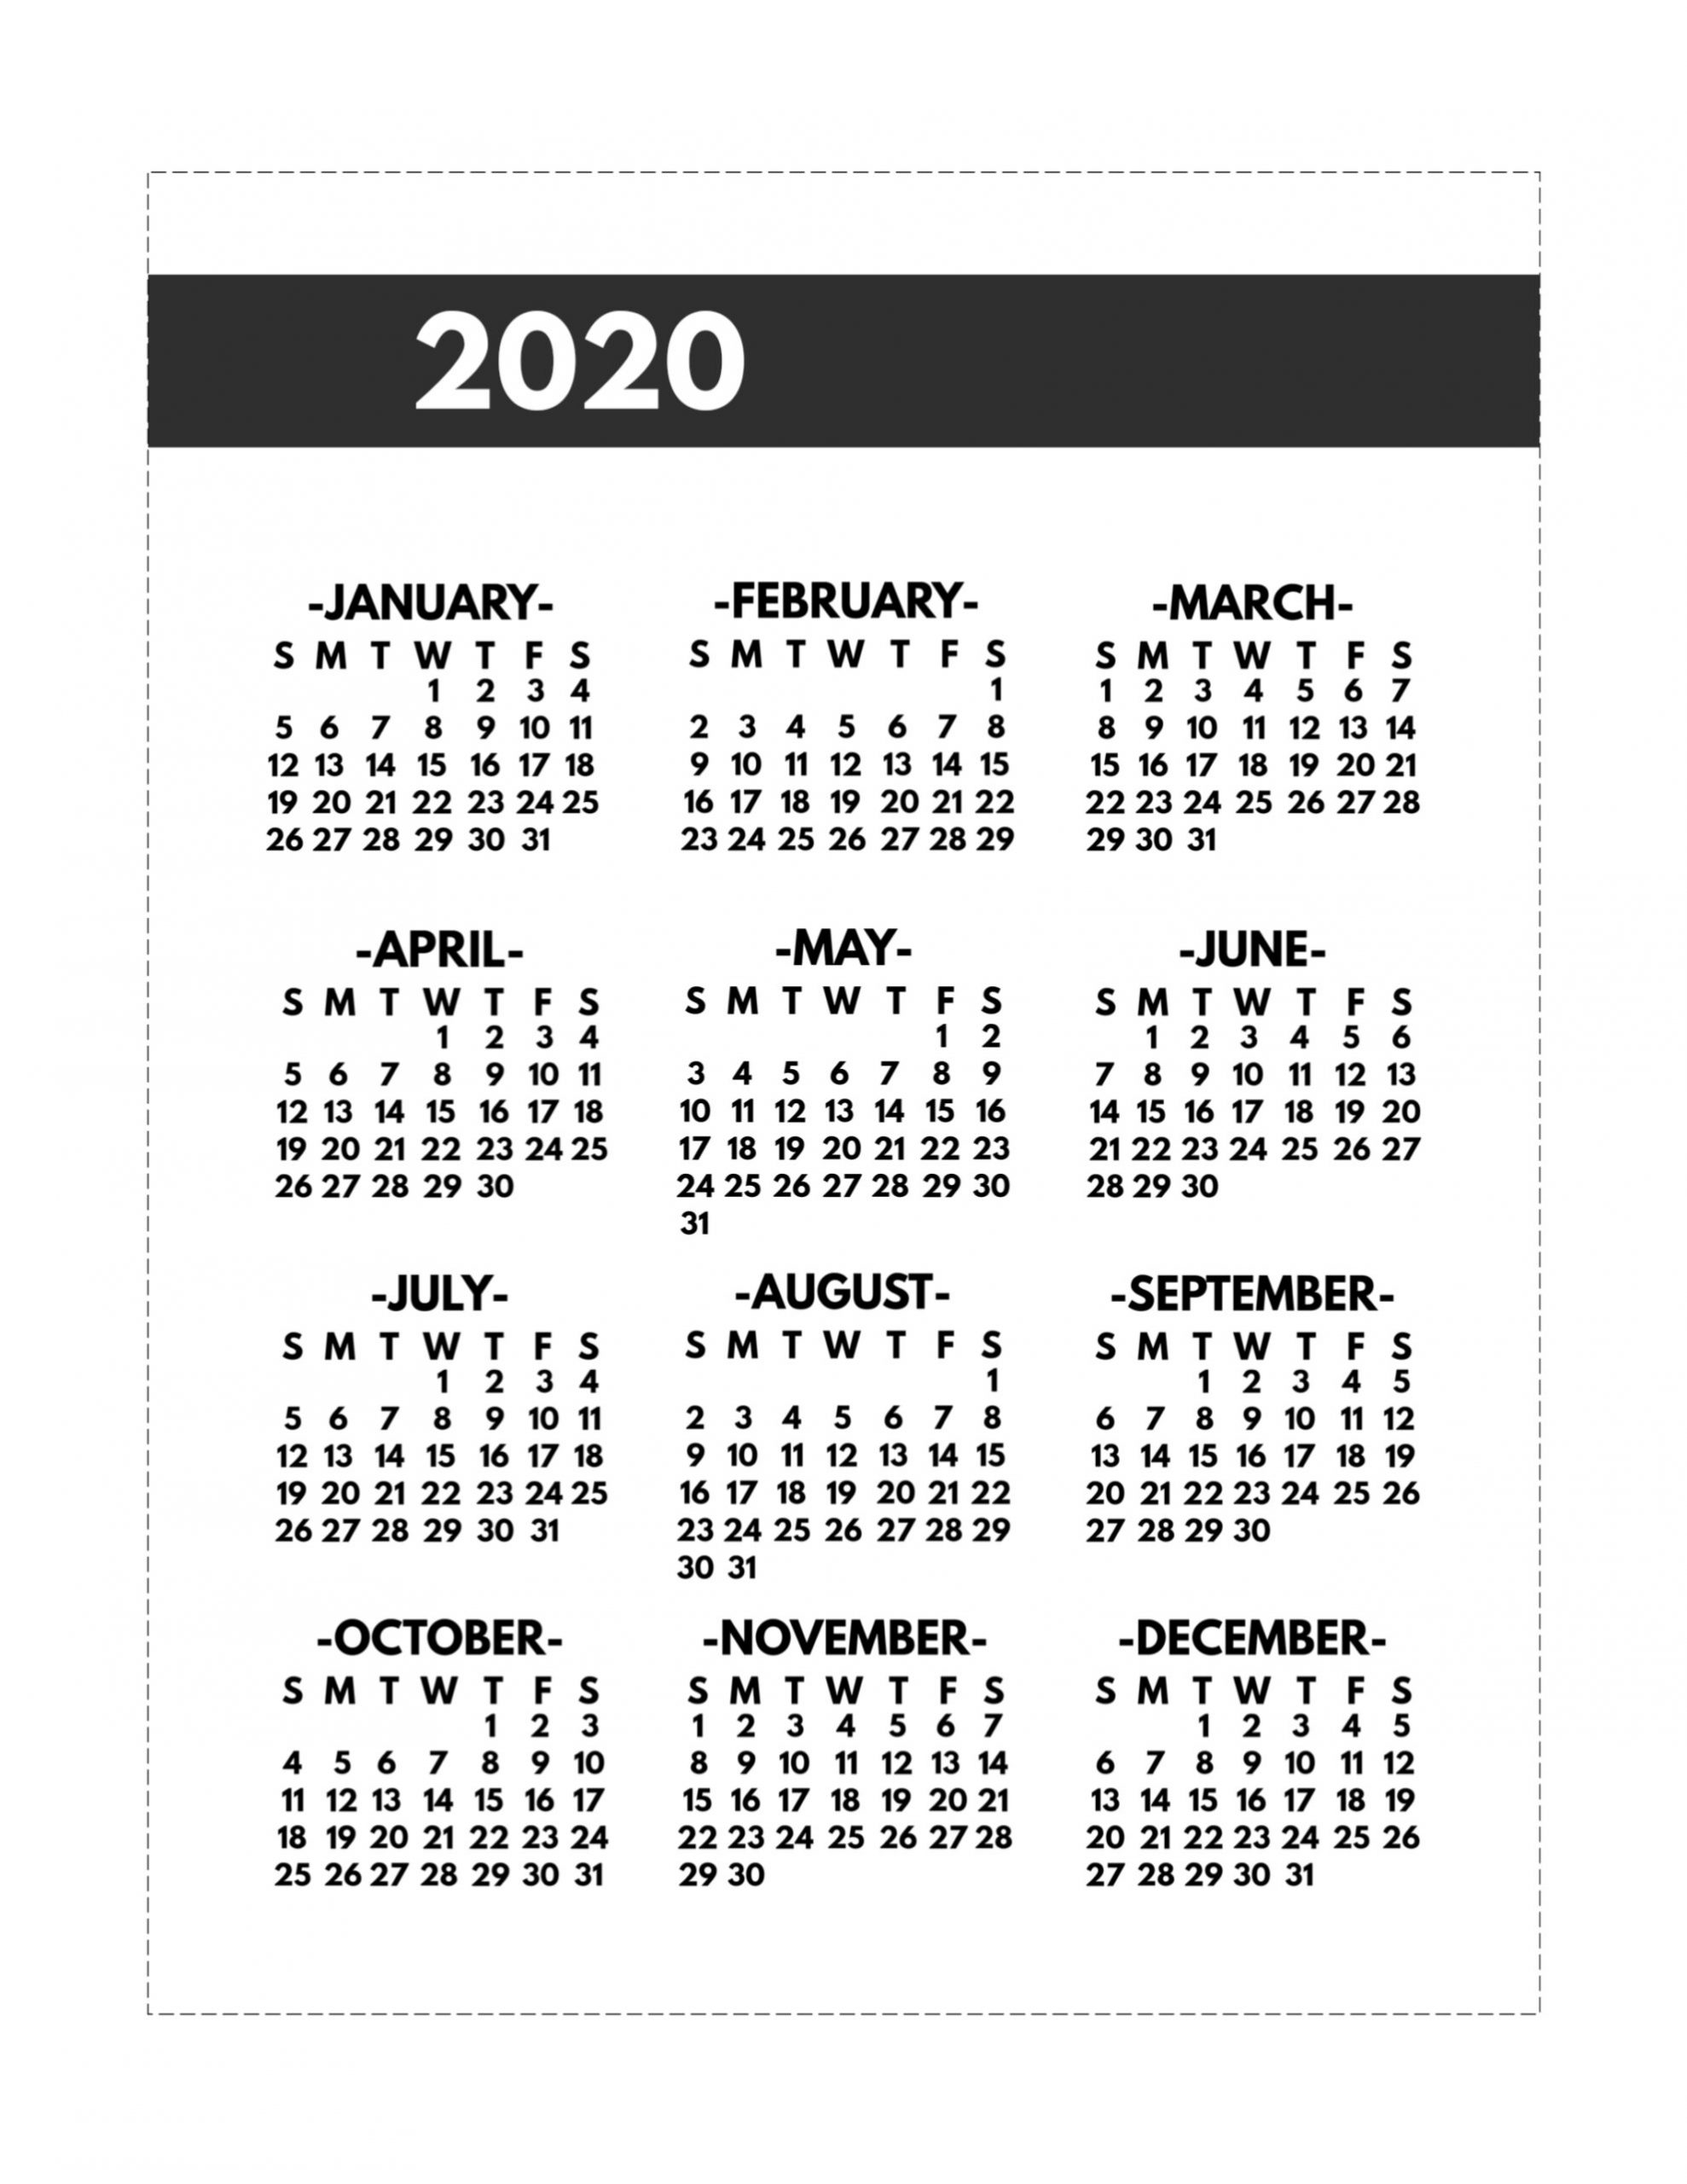 2020 Printable One Page Year At A Glance Calendar | Paper throughout 2020 Calendar Year At A Glance Printable